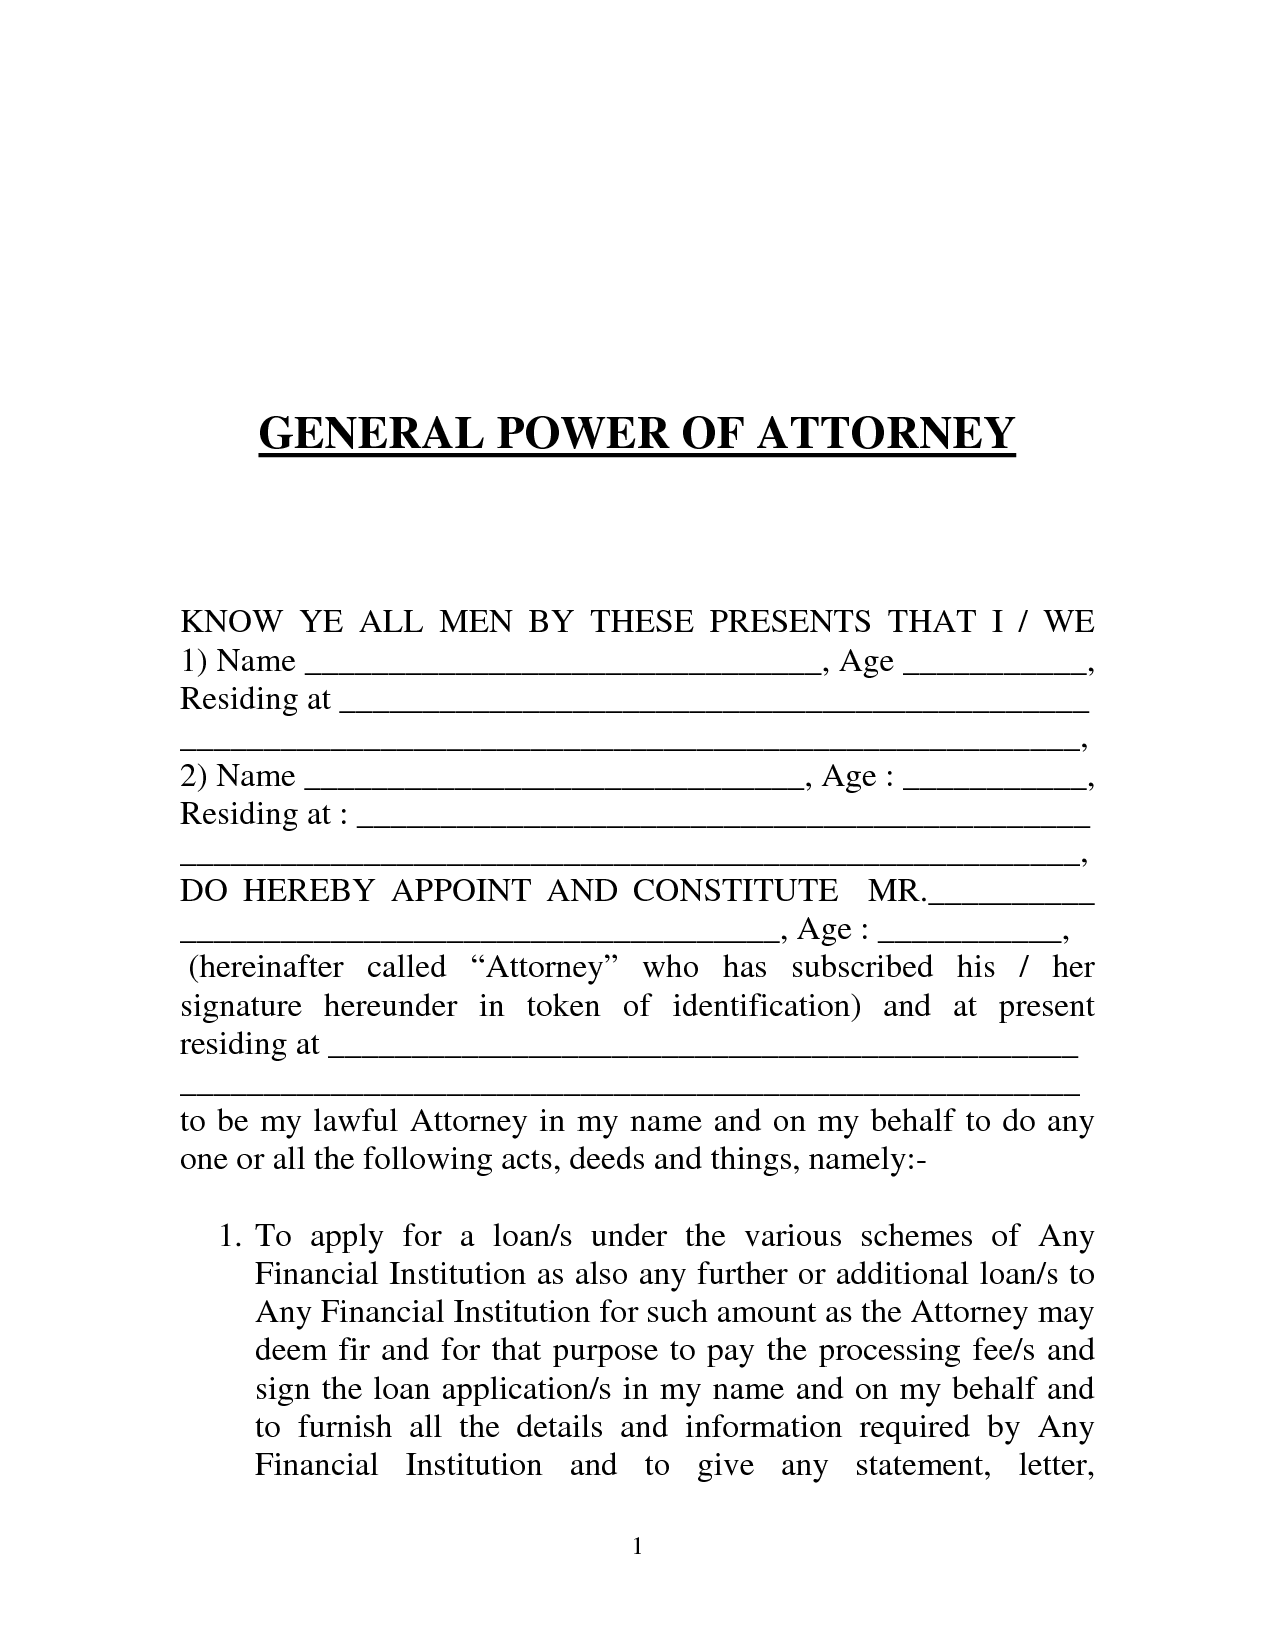 General Power Of Attorney Form India by prettytulips letter of – General Power of Attorney Form